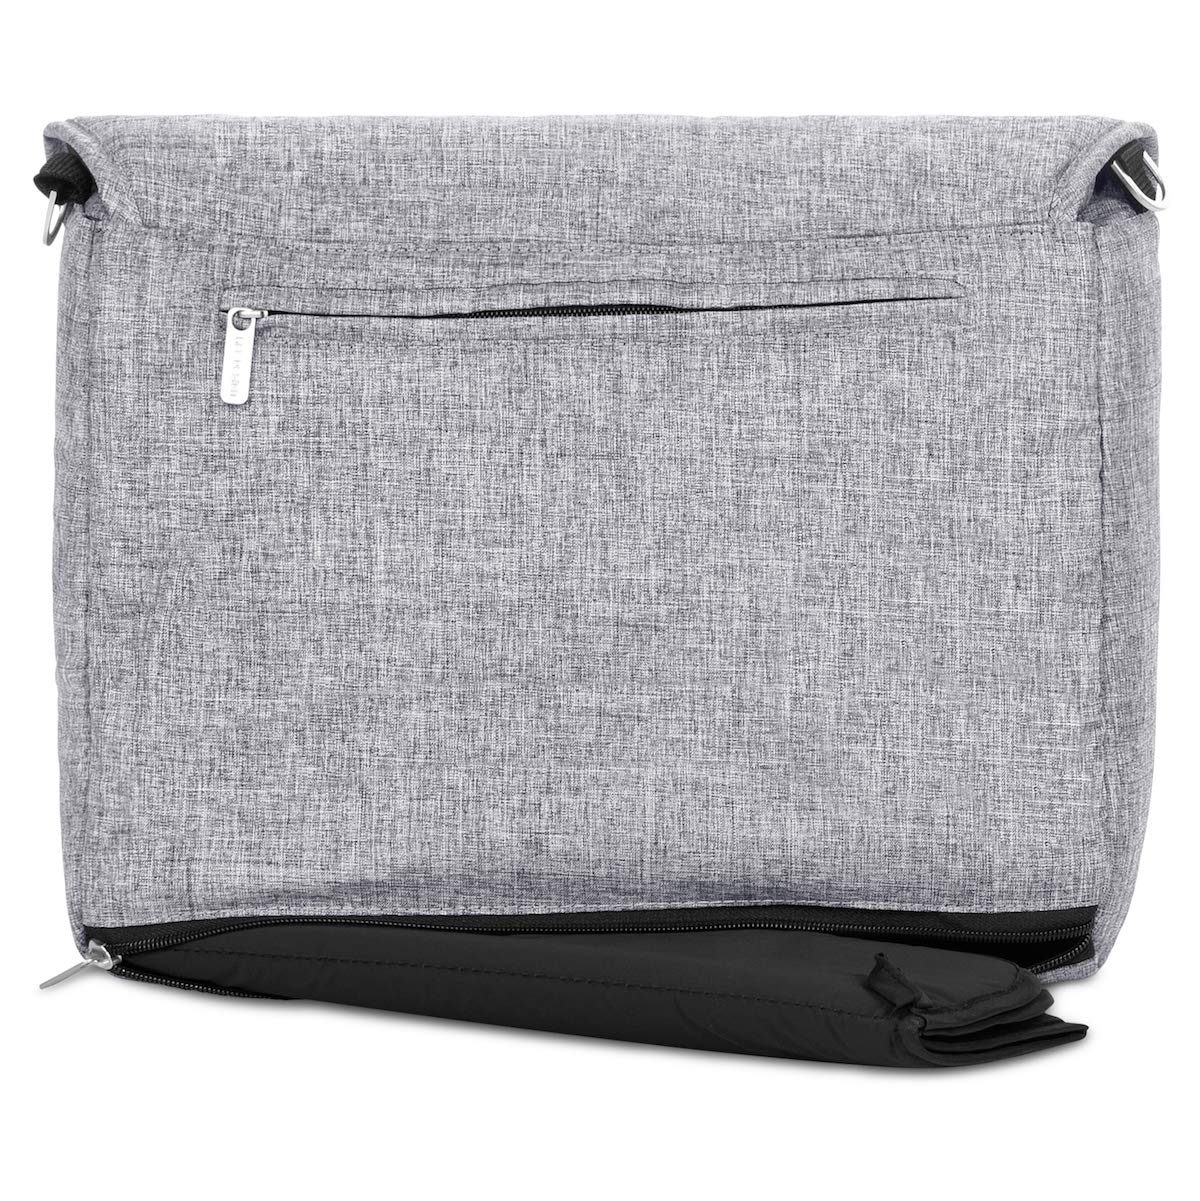 ABC Design 2020 Wickeltasche Easy graphite grey